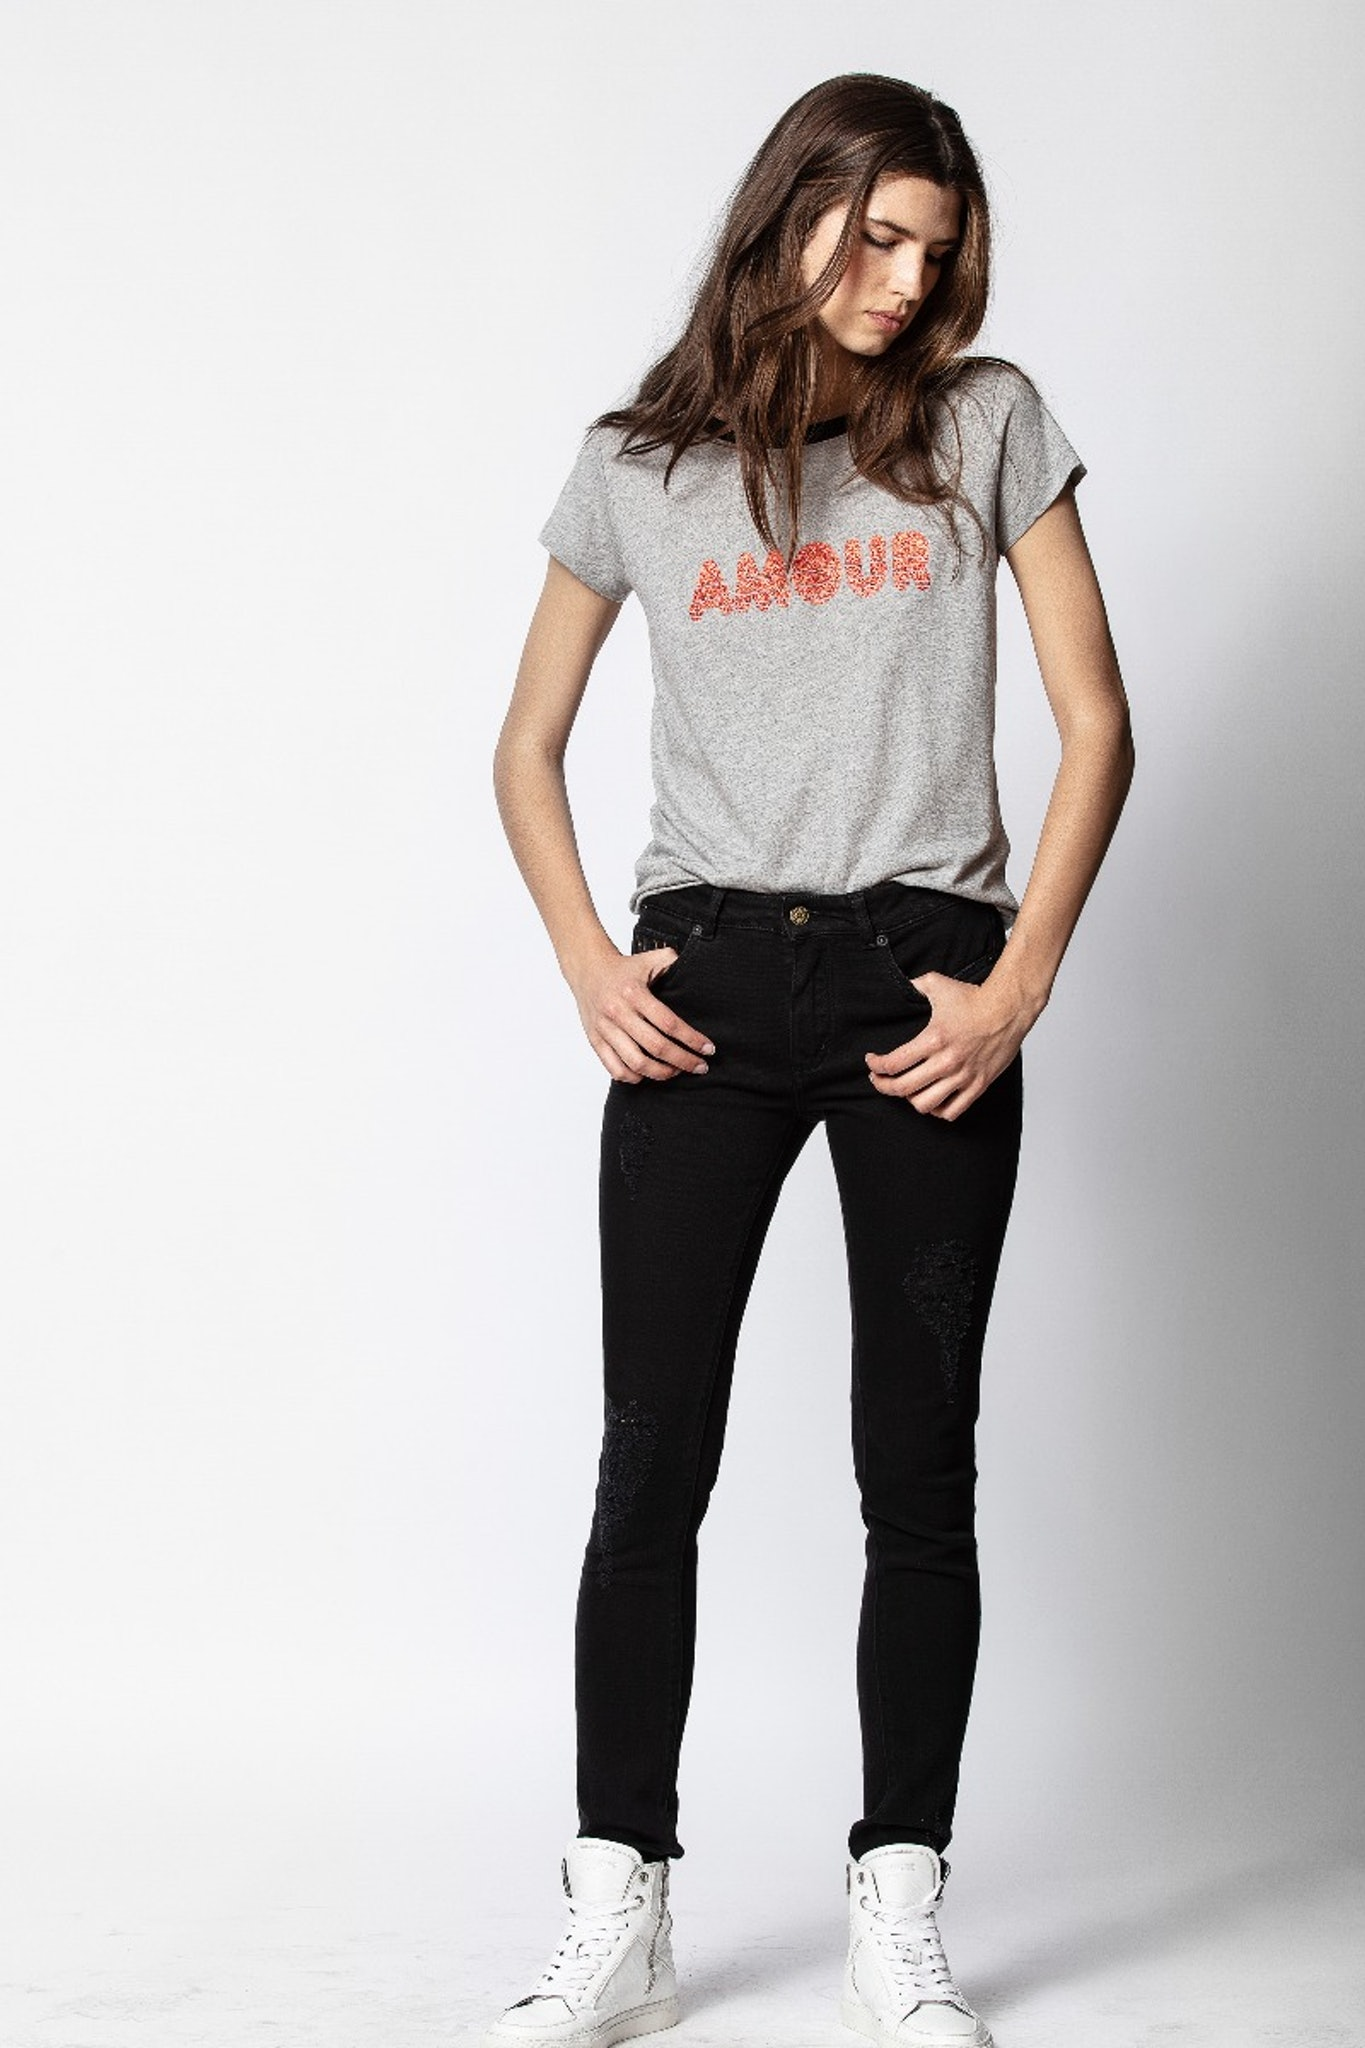 Woop Amour 70 T-shirt